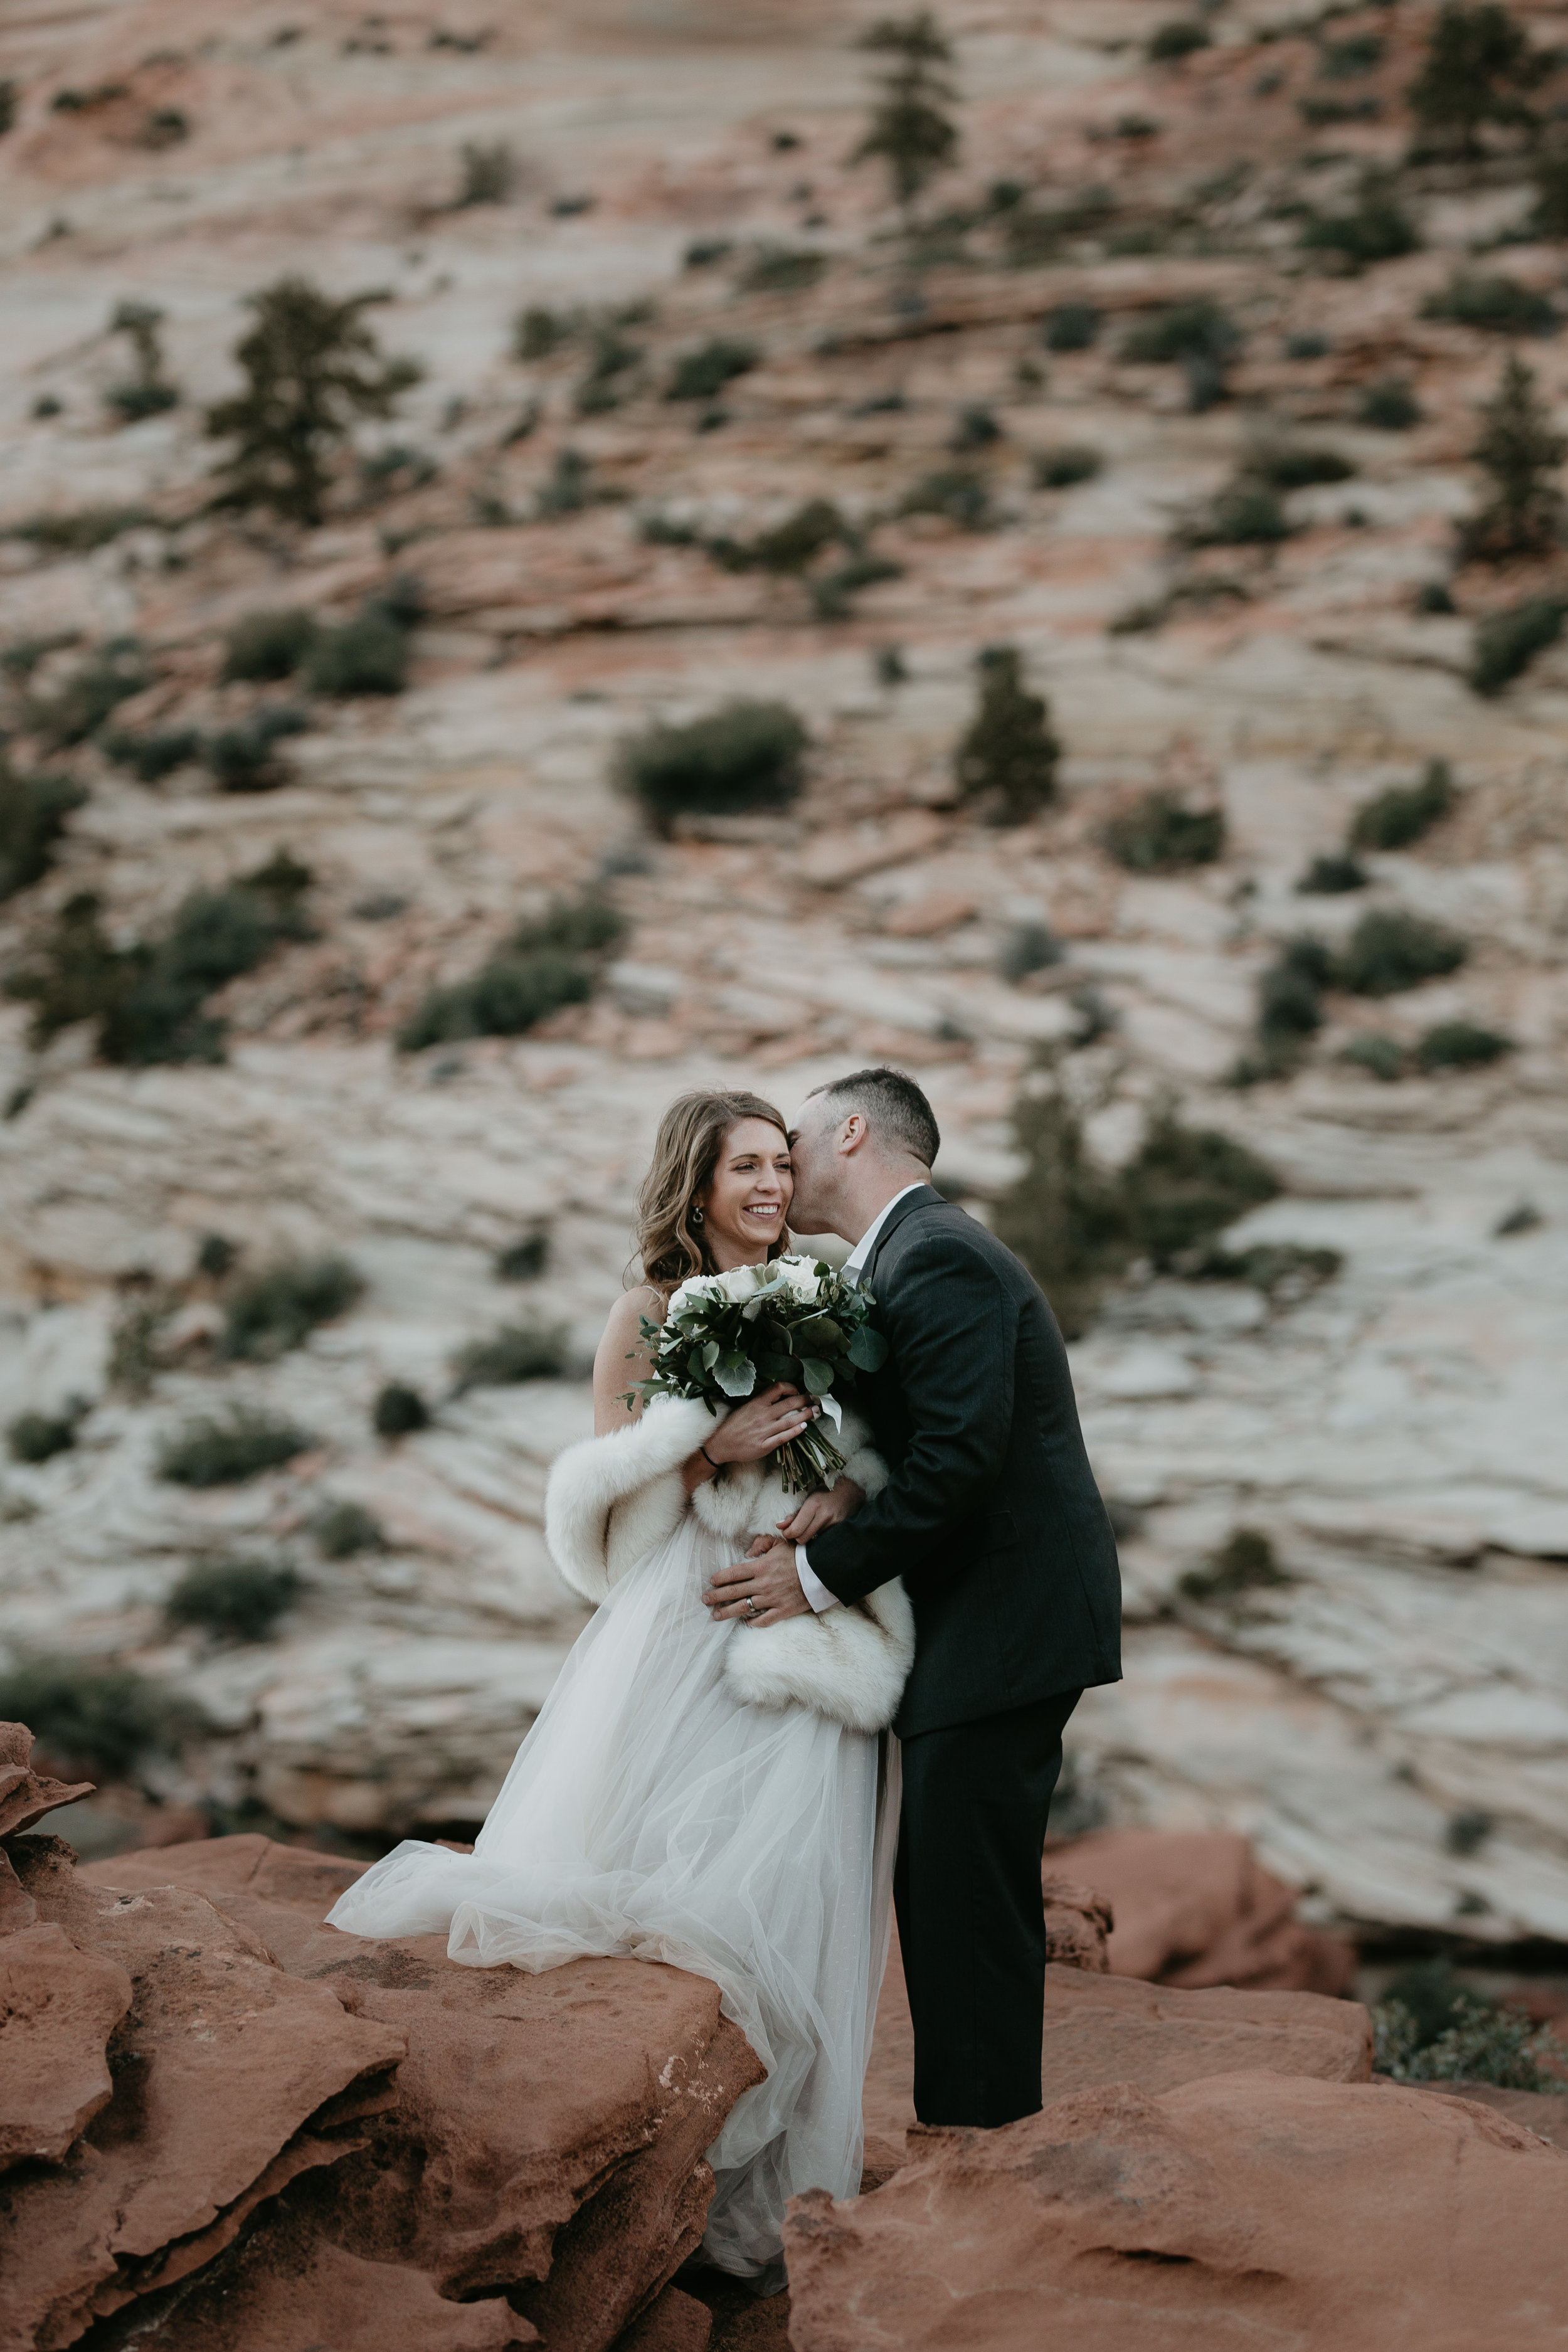 nicole-daacke-photography-zion-national-park-elopement-photographer-canyon-overlook-trail-elope-hiking-adventure-wedding-photos-fall-utah-red-rock-canyon-stgeorge-eloping-photographer-73.jpg